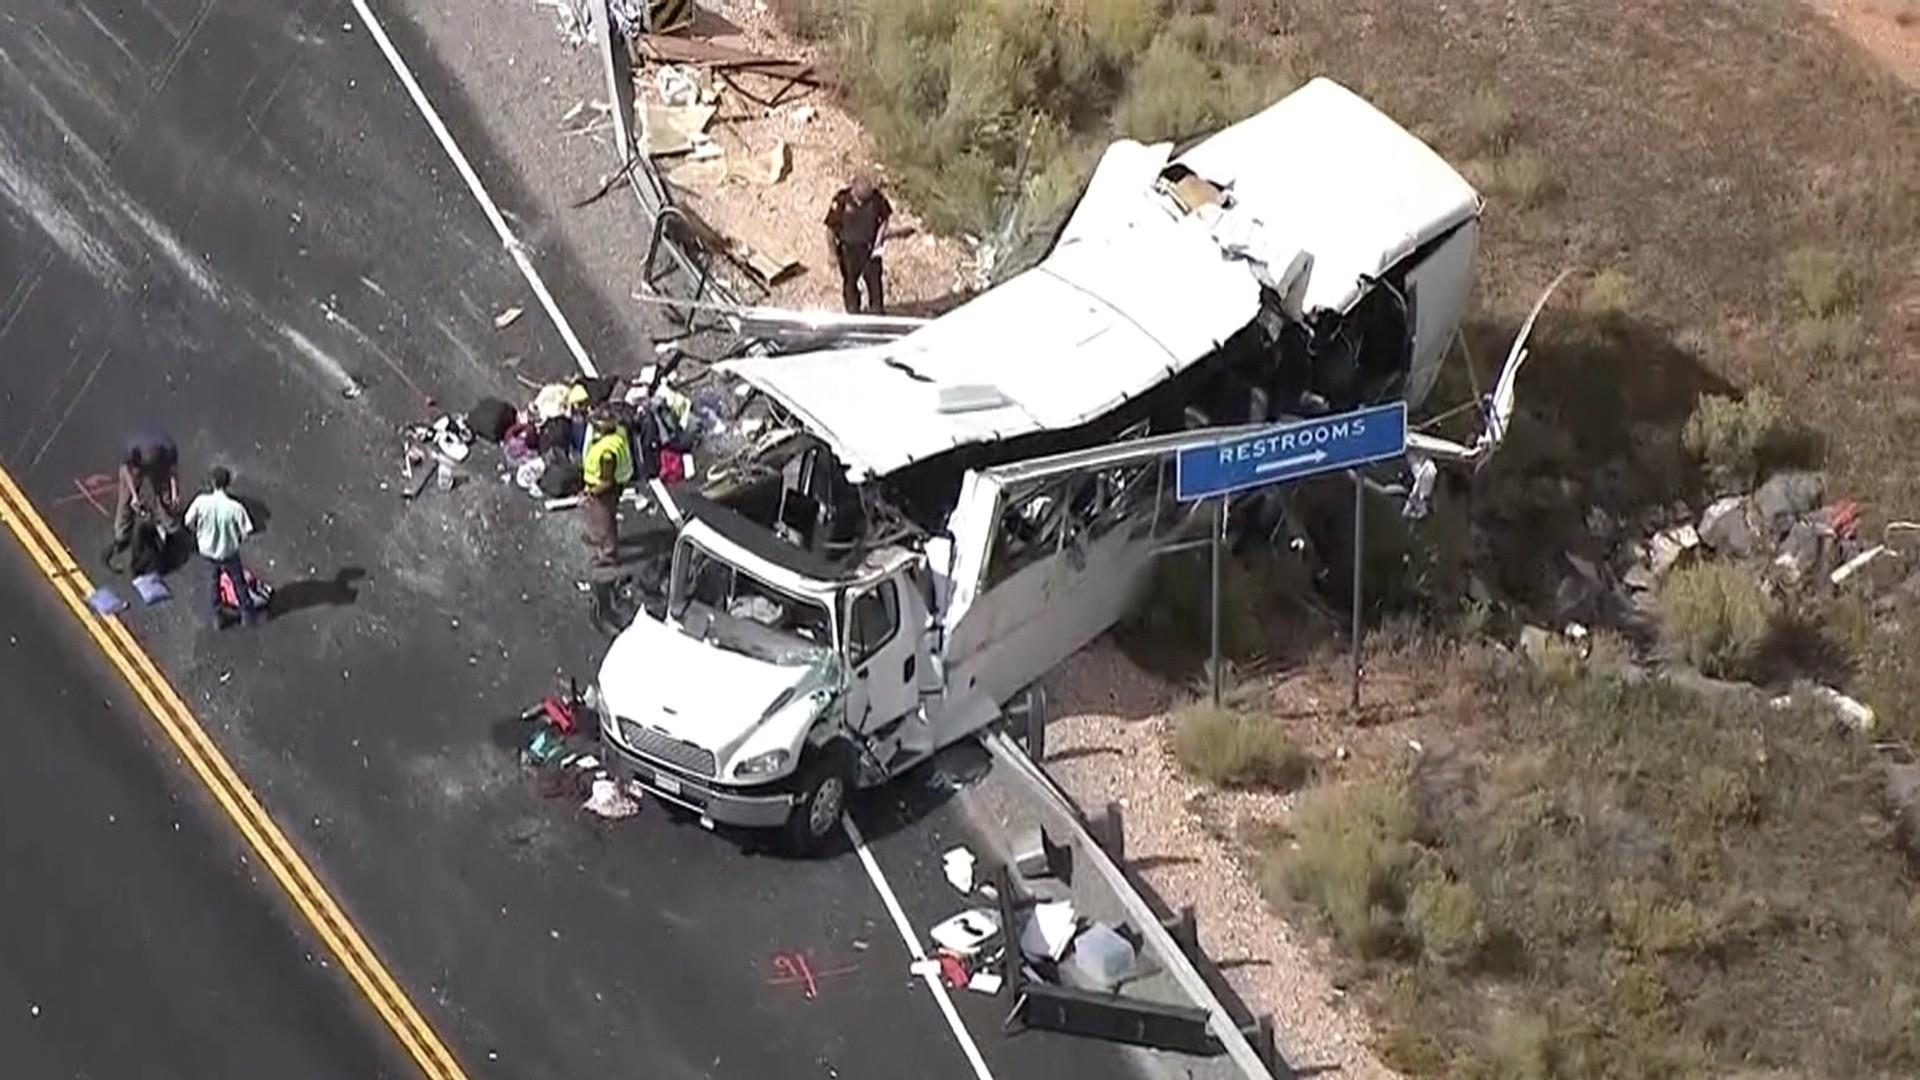 Four Dead After Tour Bus Crashes Near Bryce Canyon National Park In Utah Police Say